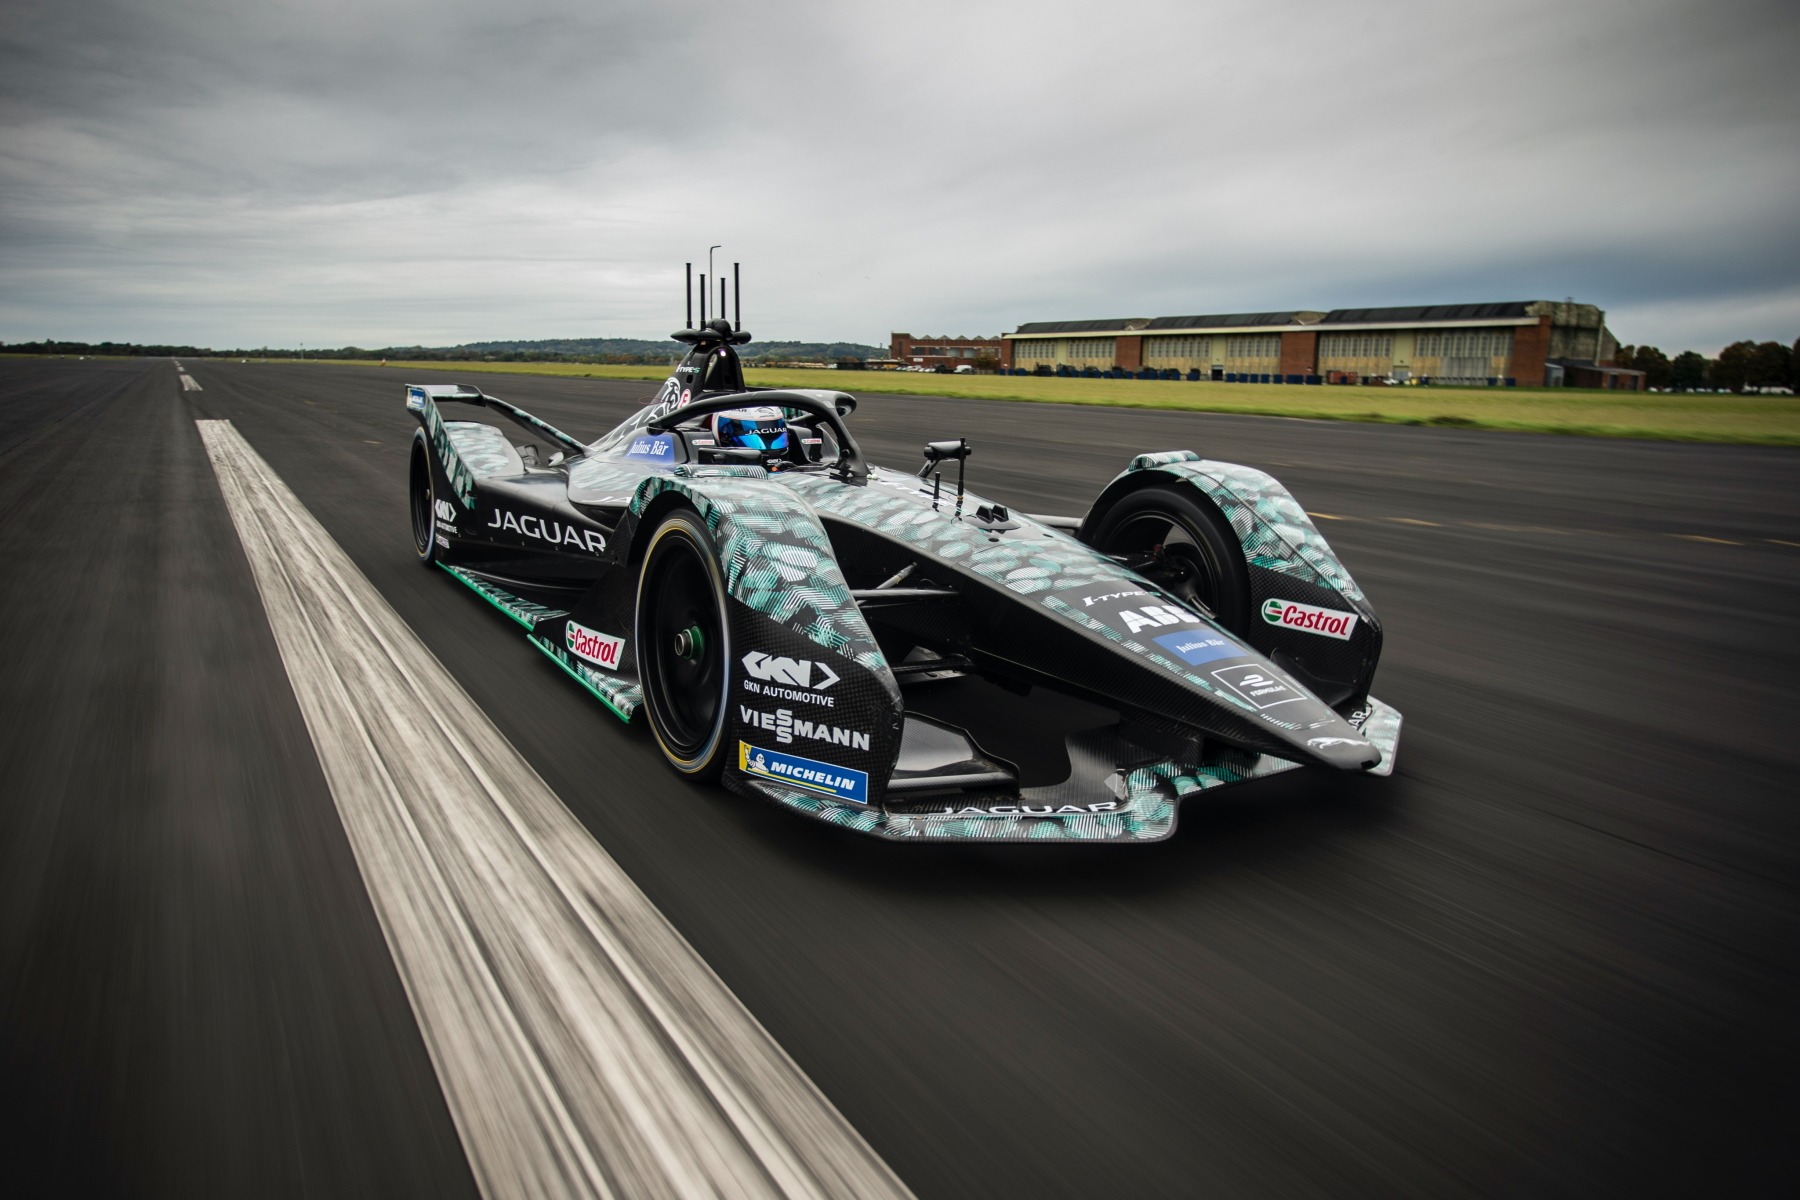 Sam-Bird-Jaguar-Racing-Testfahrt.jpg